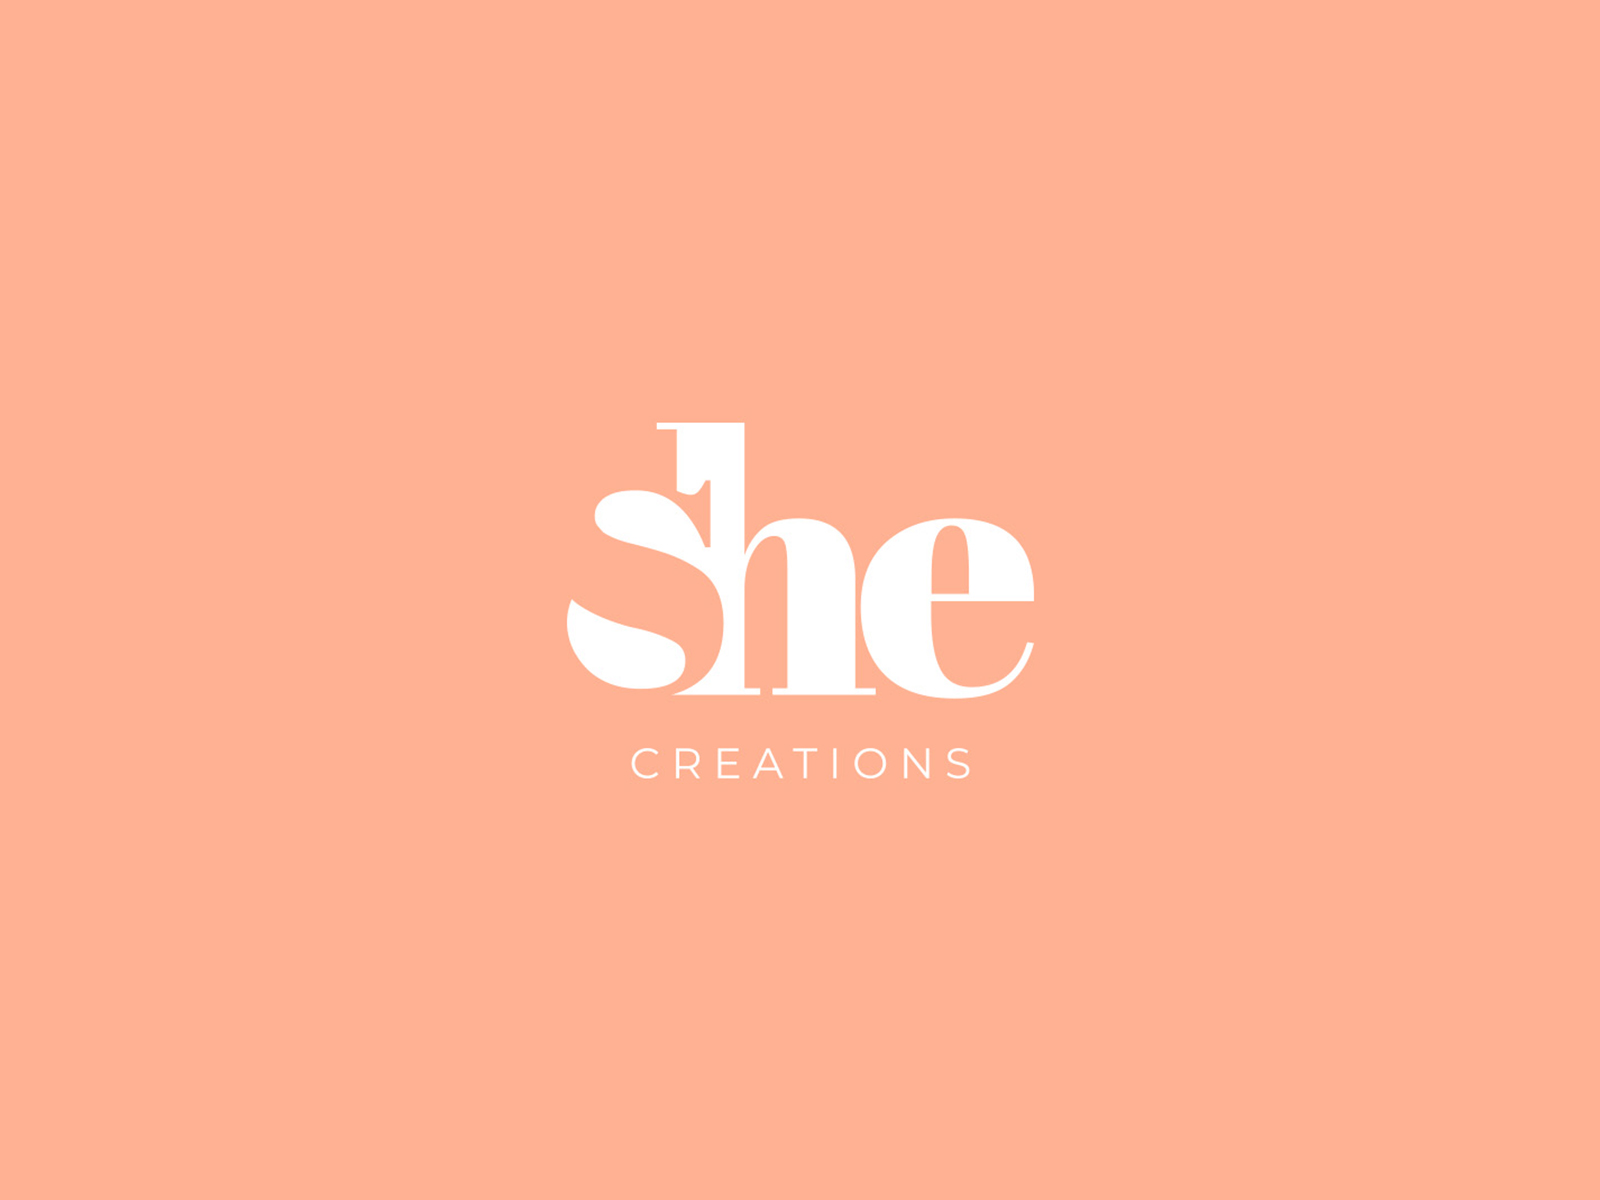 She creations negative space vegan logo branding